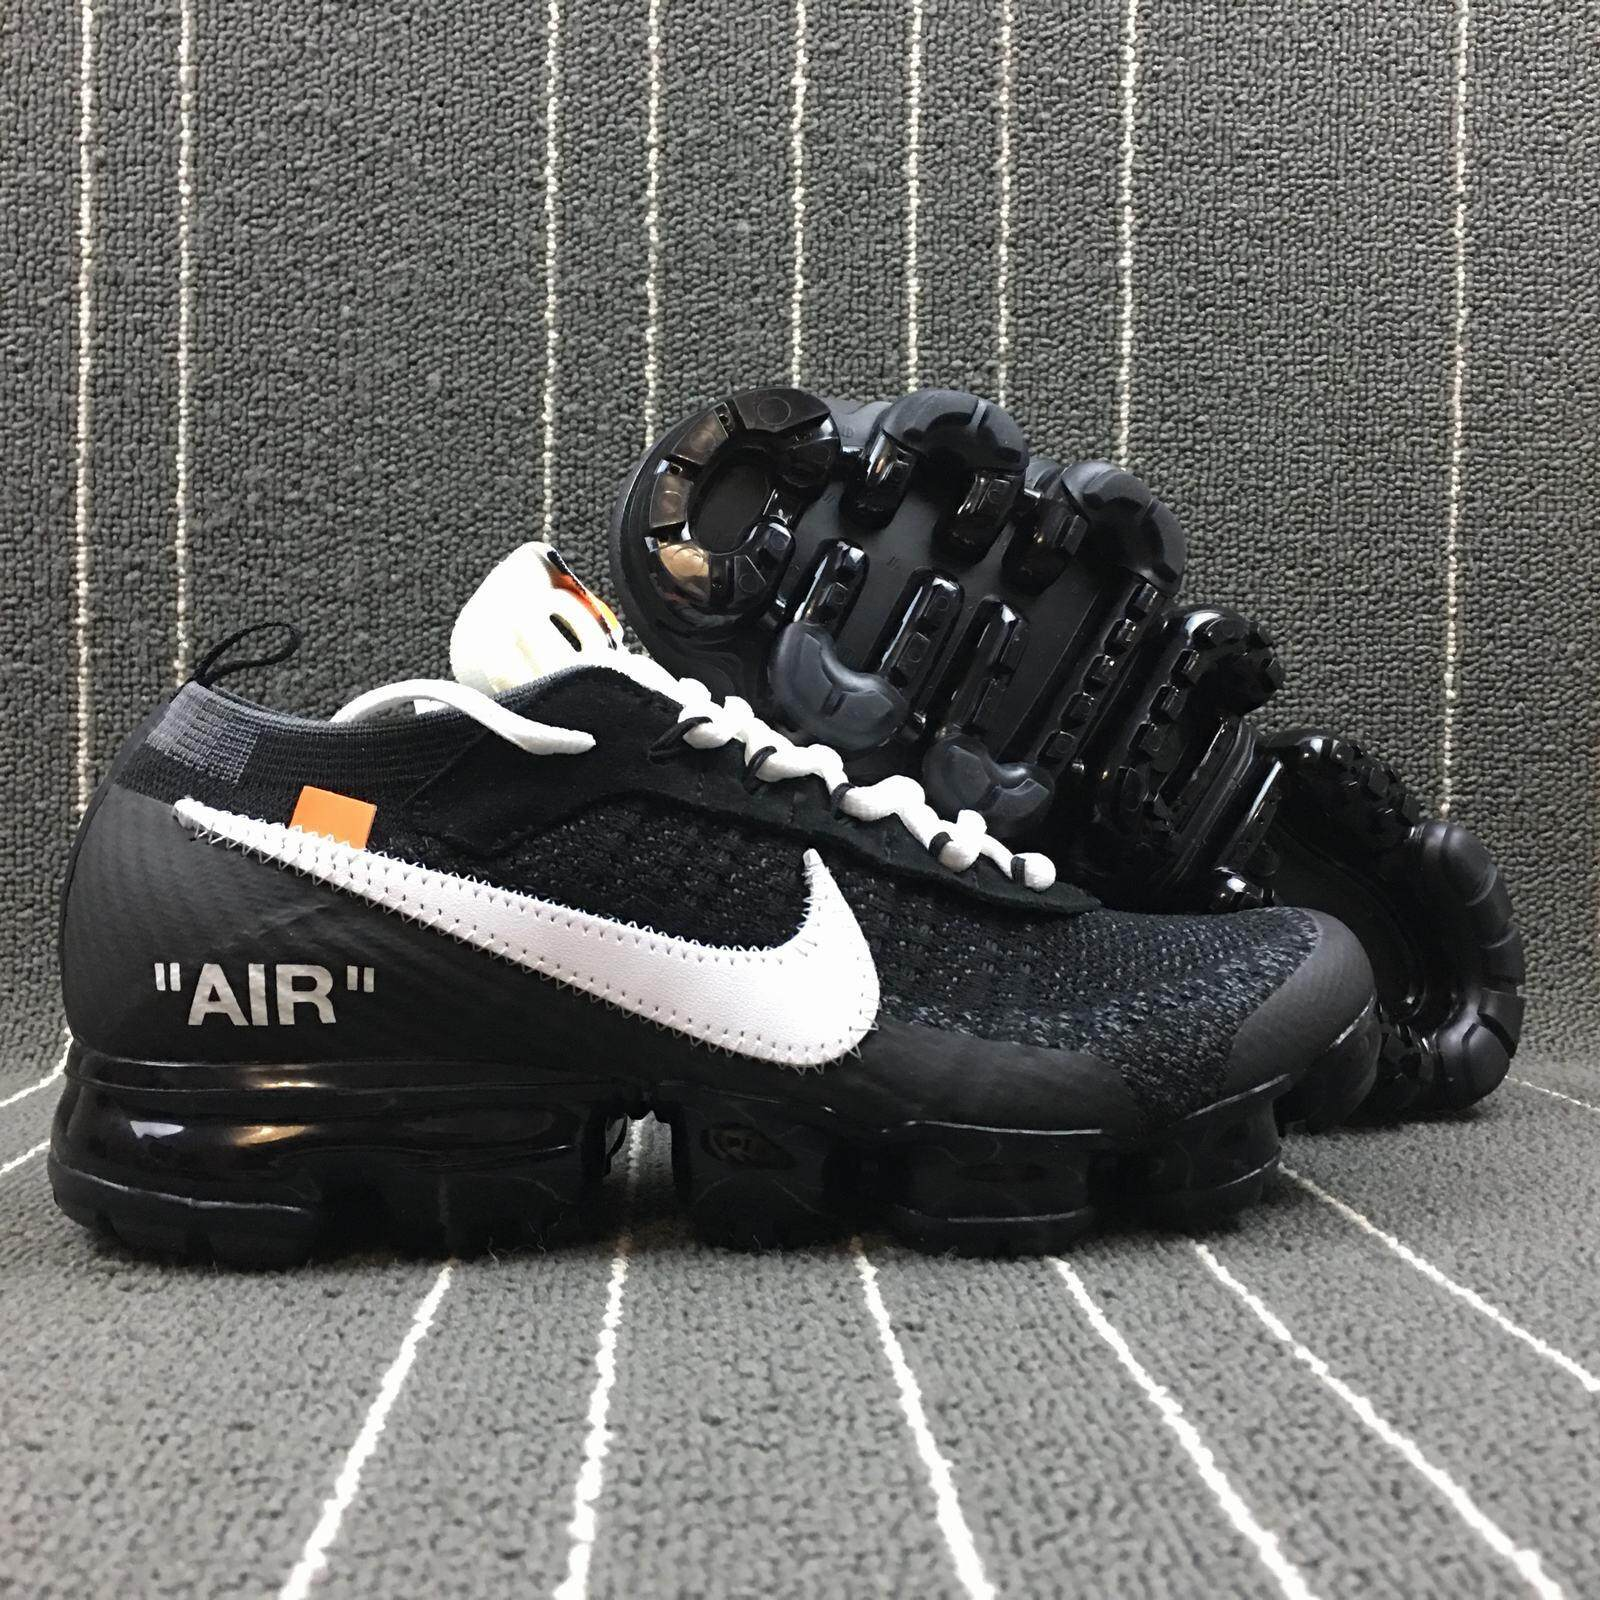 Nike Air Vapormax FK x OFF WHITE AA3831 001 Men'sWomen's Sport Fashion Running Shoes Sneakers ETA Delivery 7 14 days (Pre Order)